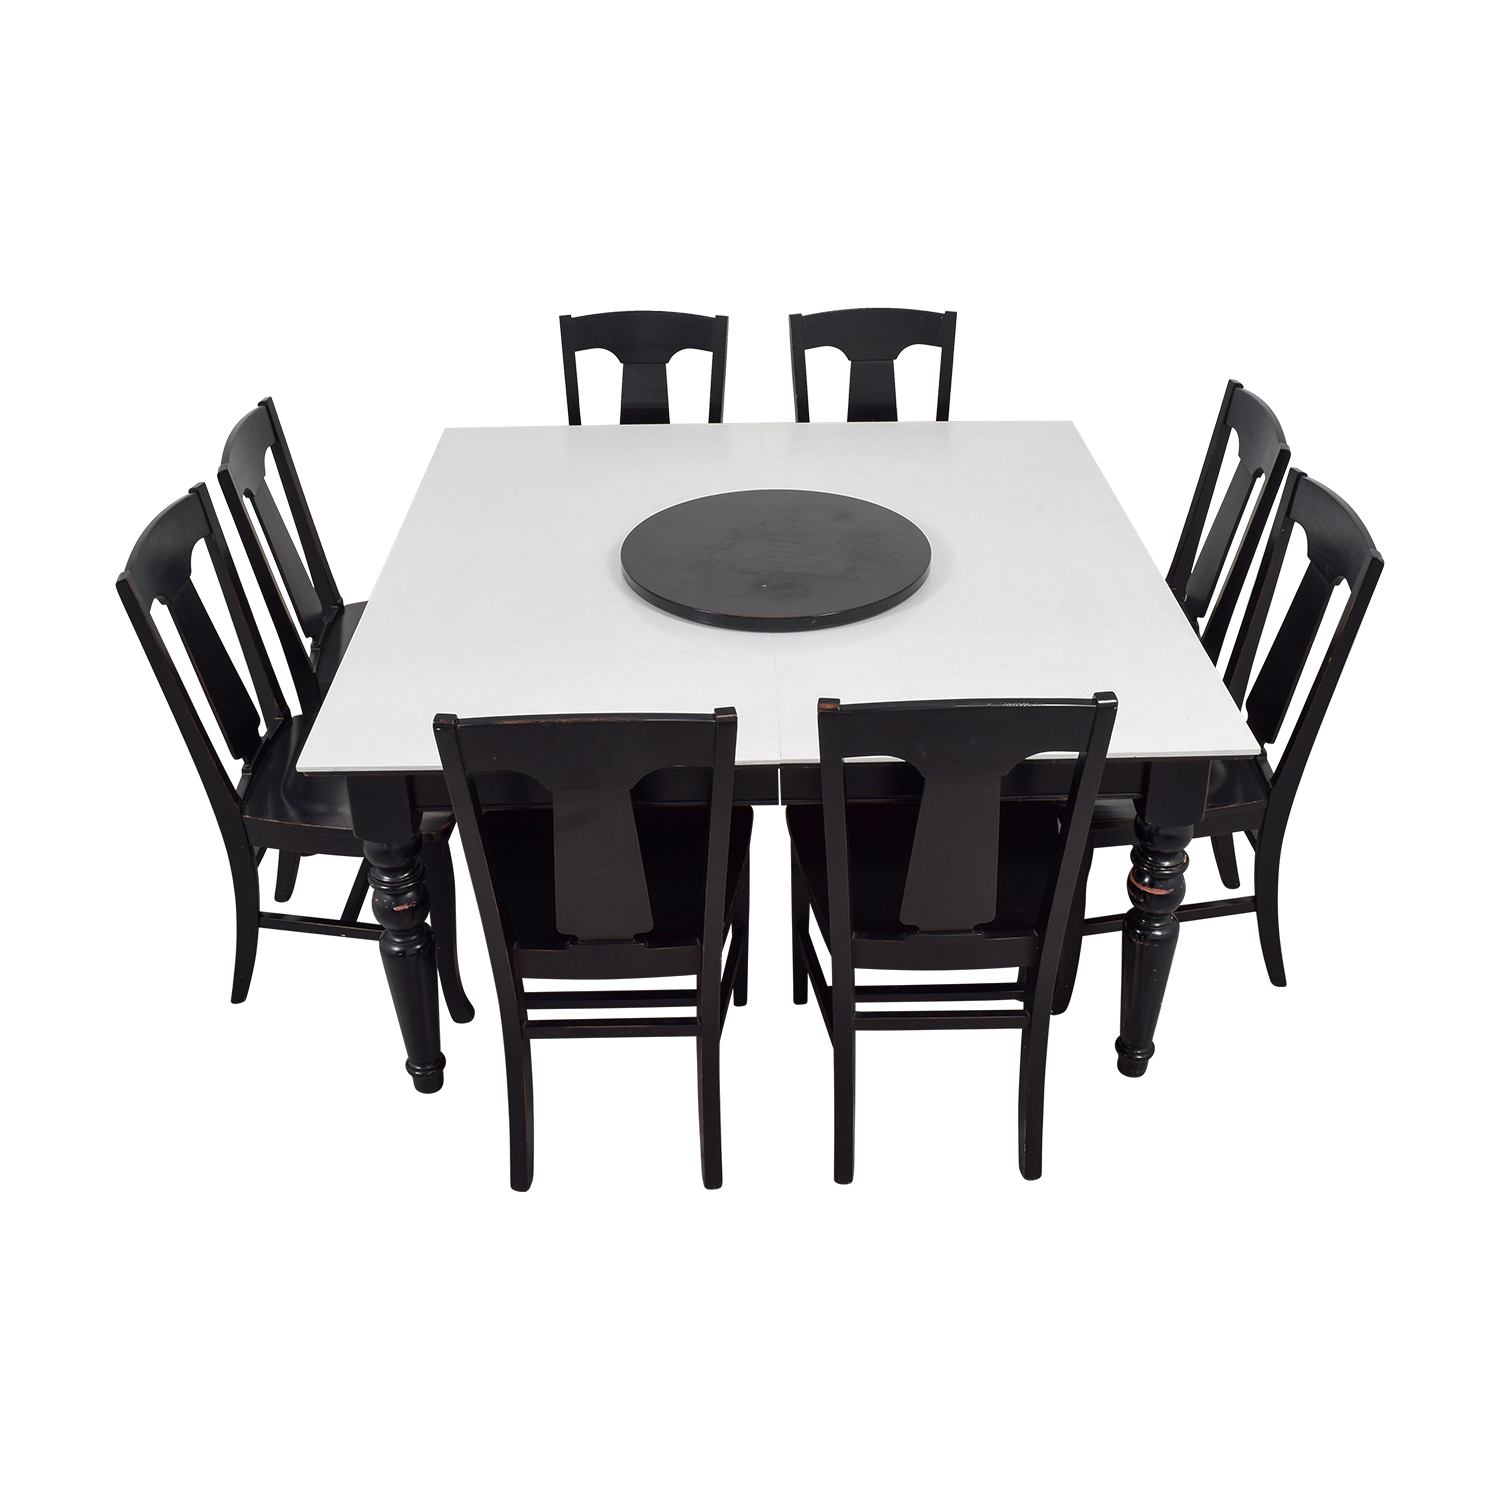 Pottery Barn Pottery Barn White and Black Extendable Dining Set with Lazy Susan used